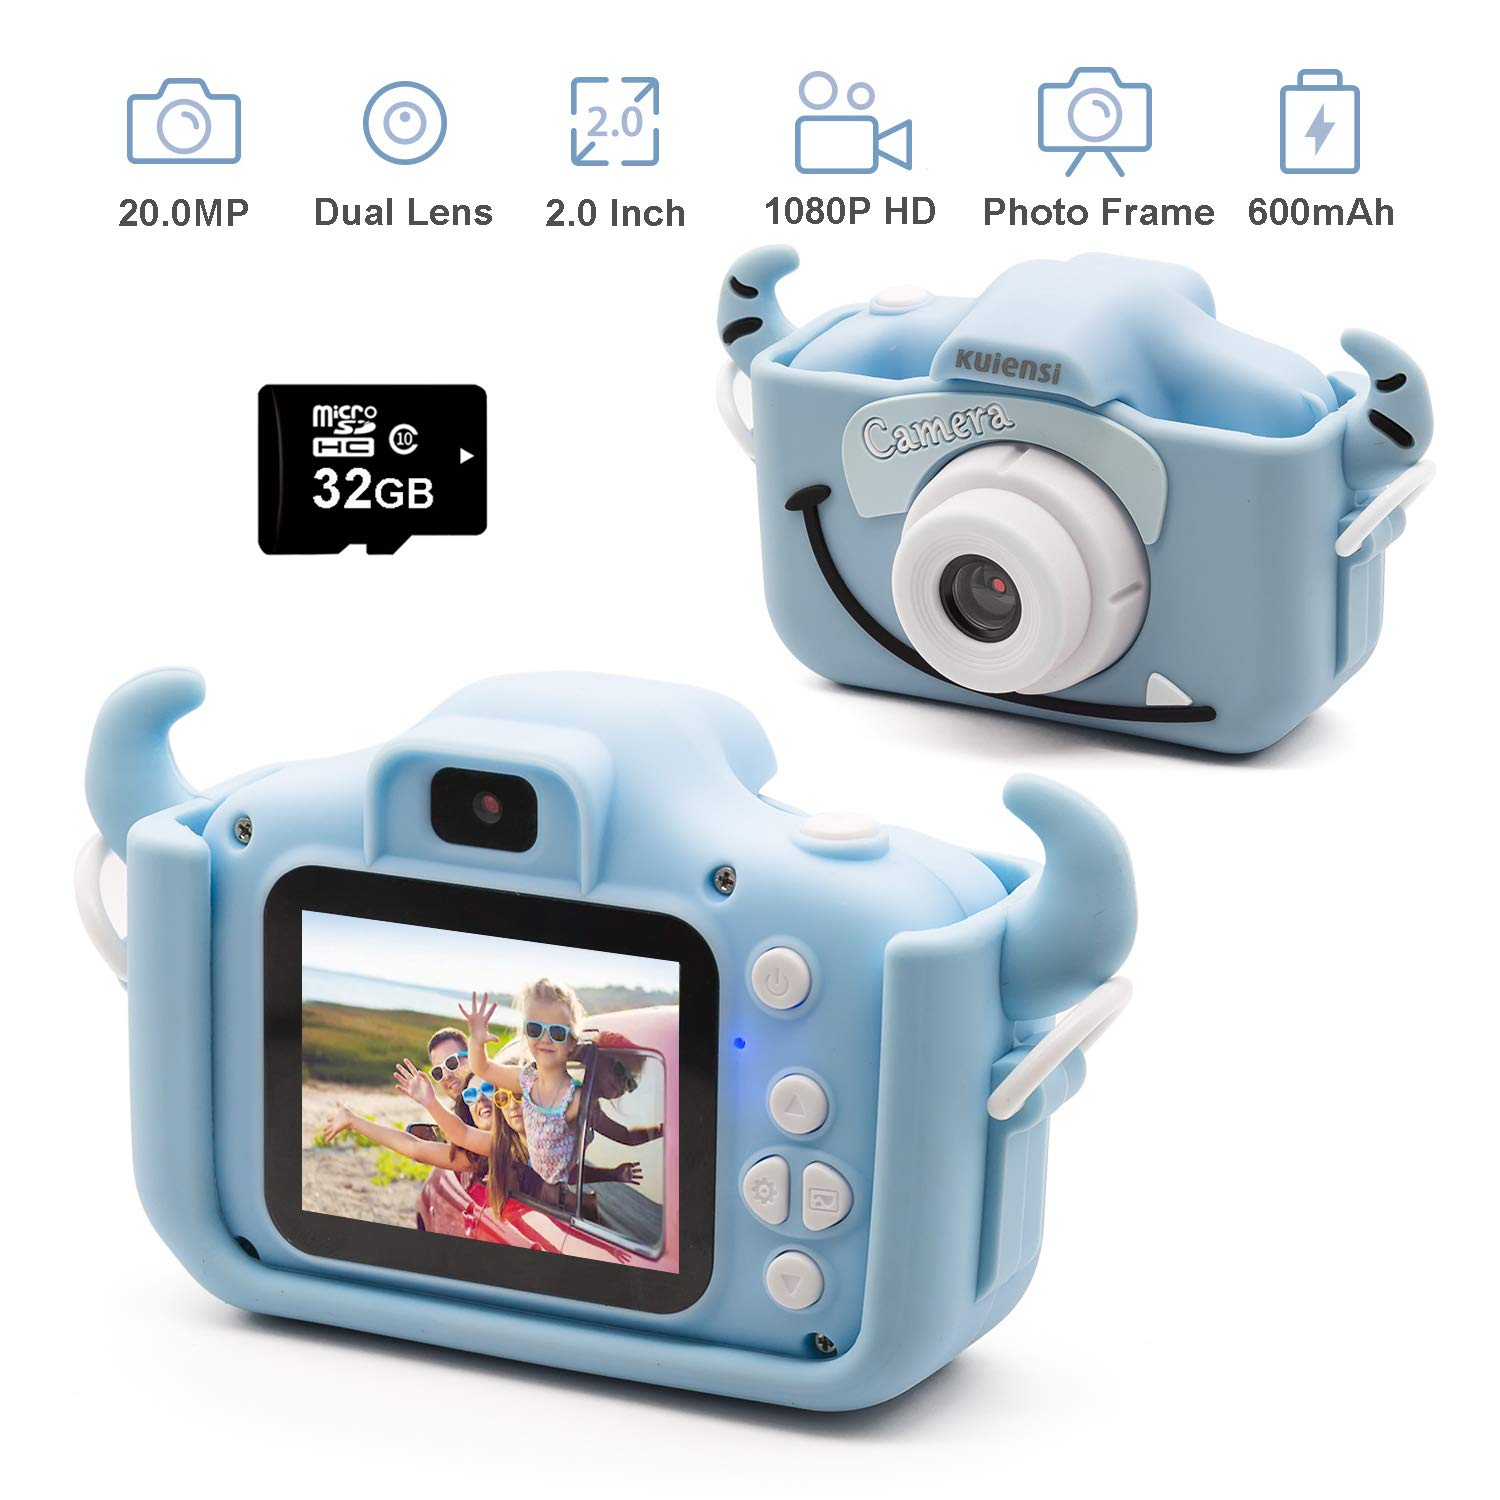 Kids Digital Camera, Girls Birthday Toy Gifts for 4-13-Year-Old Children, Dual Lens 20.0MP Toddler Cameras, Child Camcorder Video Recorder 1080P IPS 2.0 Inch with 32G TF Card, Cow Soft Silicone Case